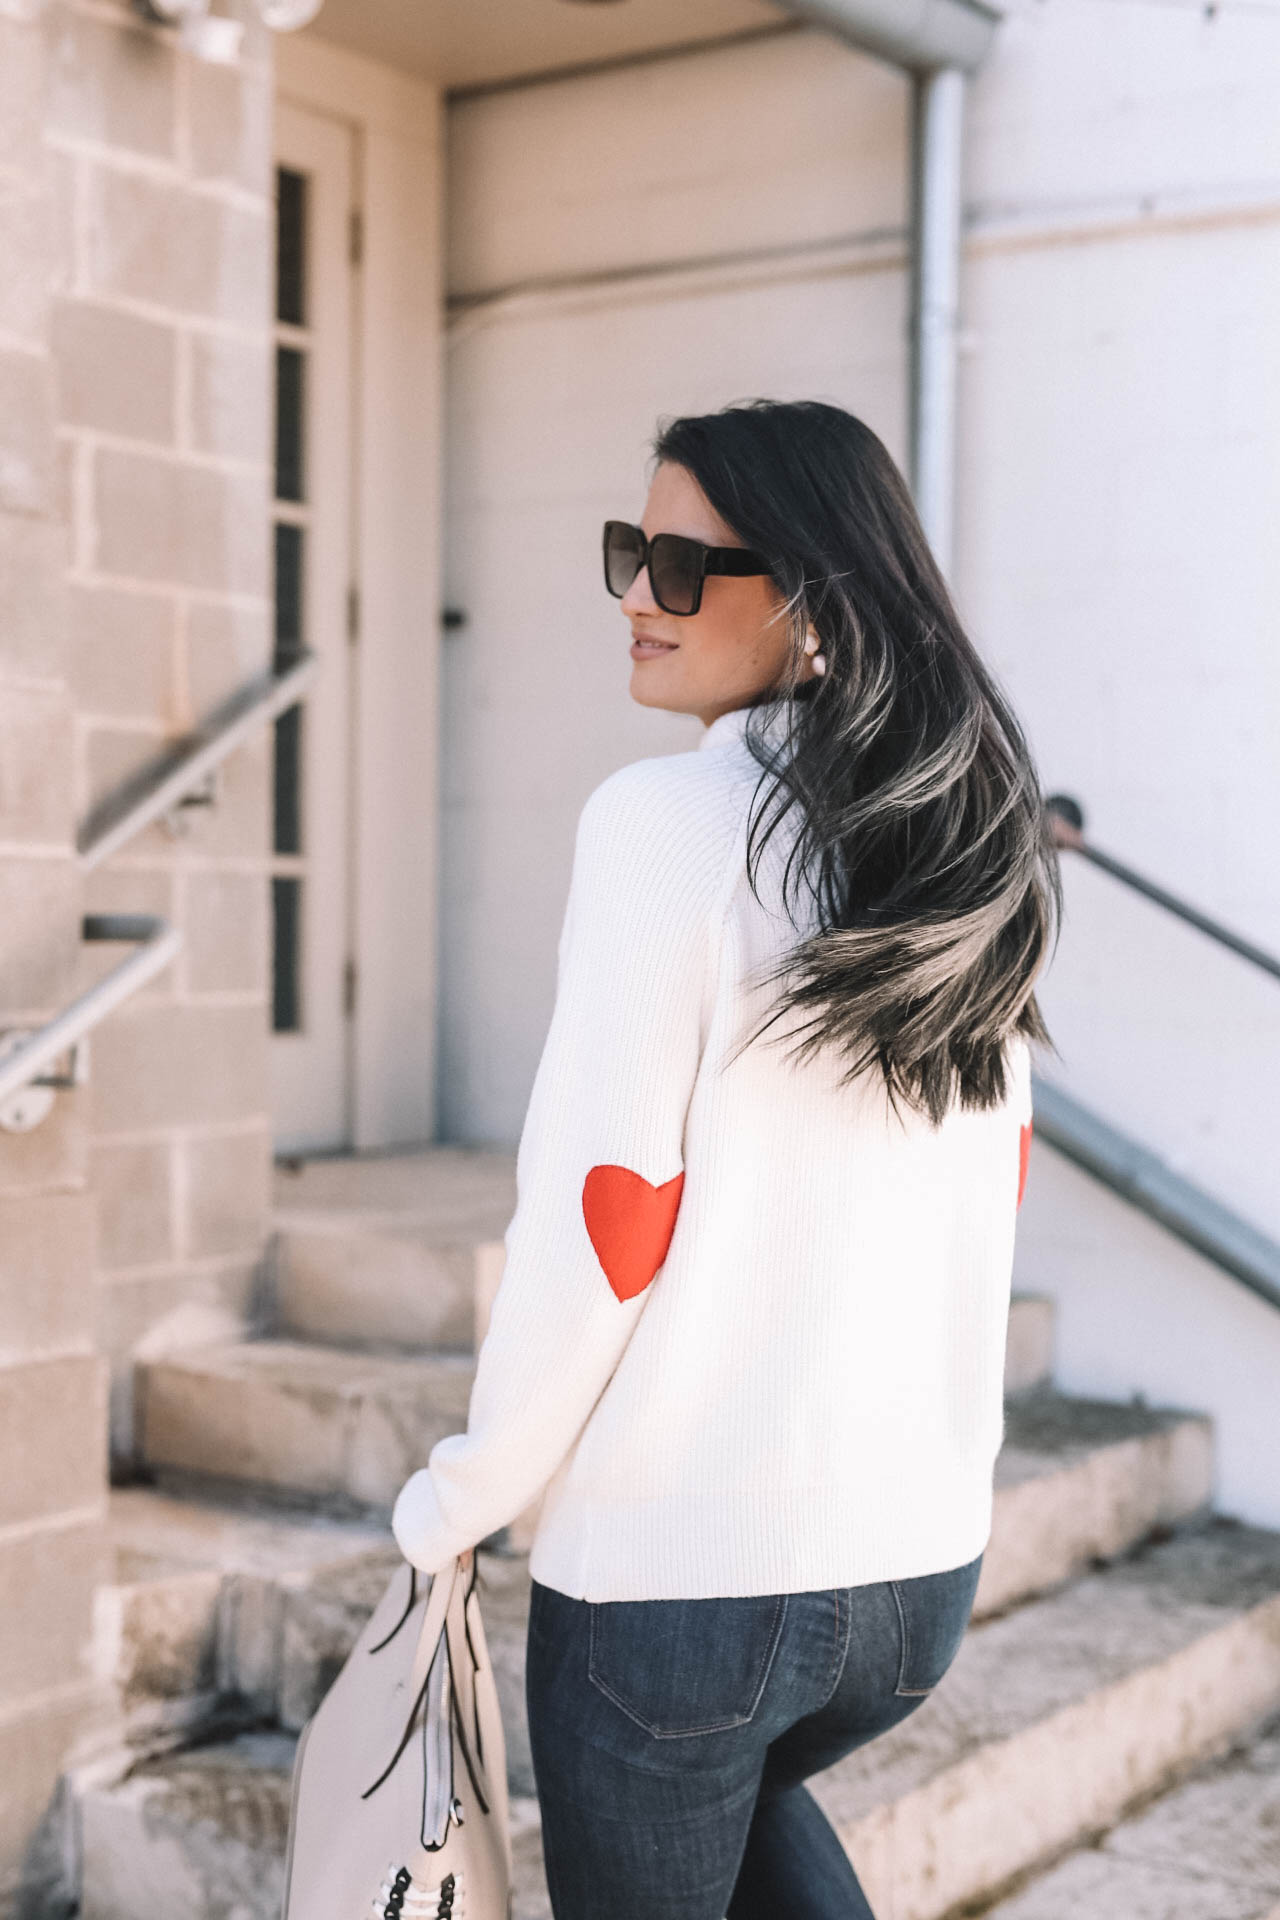 DTKAustin shares why she is dressing casual for Valentine's Day with this heart sleeve Chicwish turtleneck sweater. Valentines Day outfit styled by top US fashion blog, Dressed to Kill: image of a woman wearing a Chicwish heart sweater, Mott & Bow jeans, Steve Madden shoes, Henri Bendel bag, Yves Saint Lauren glasses and Baublebar glasses